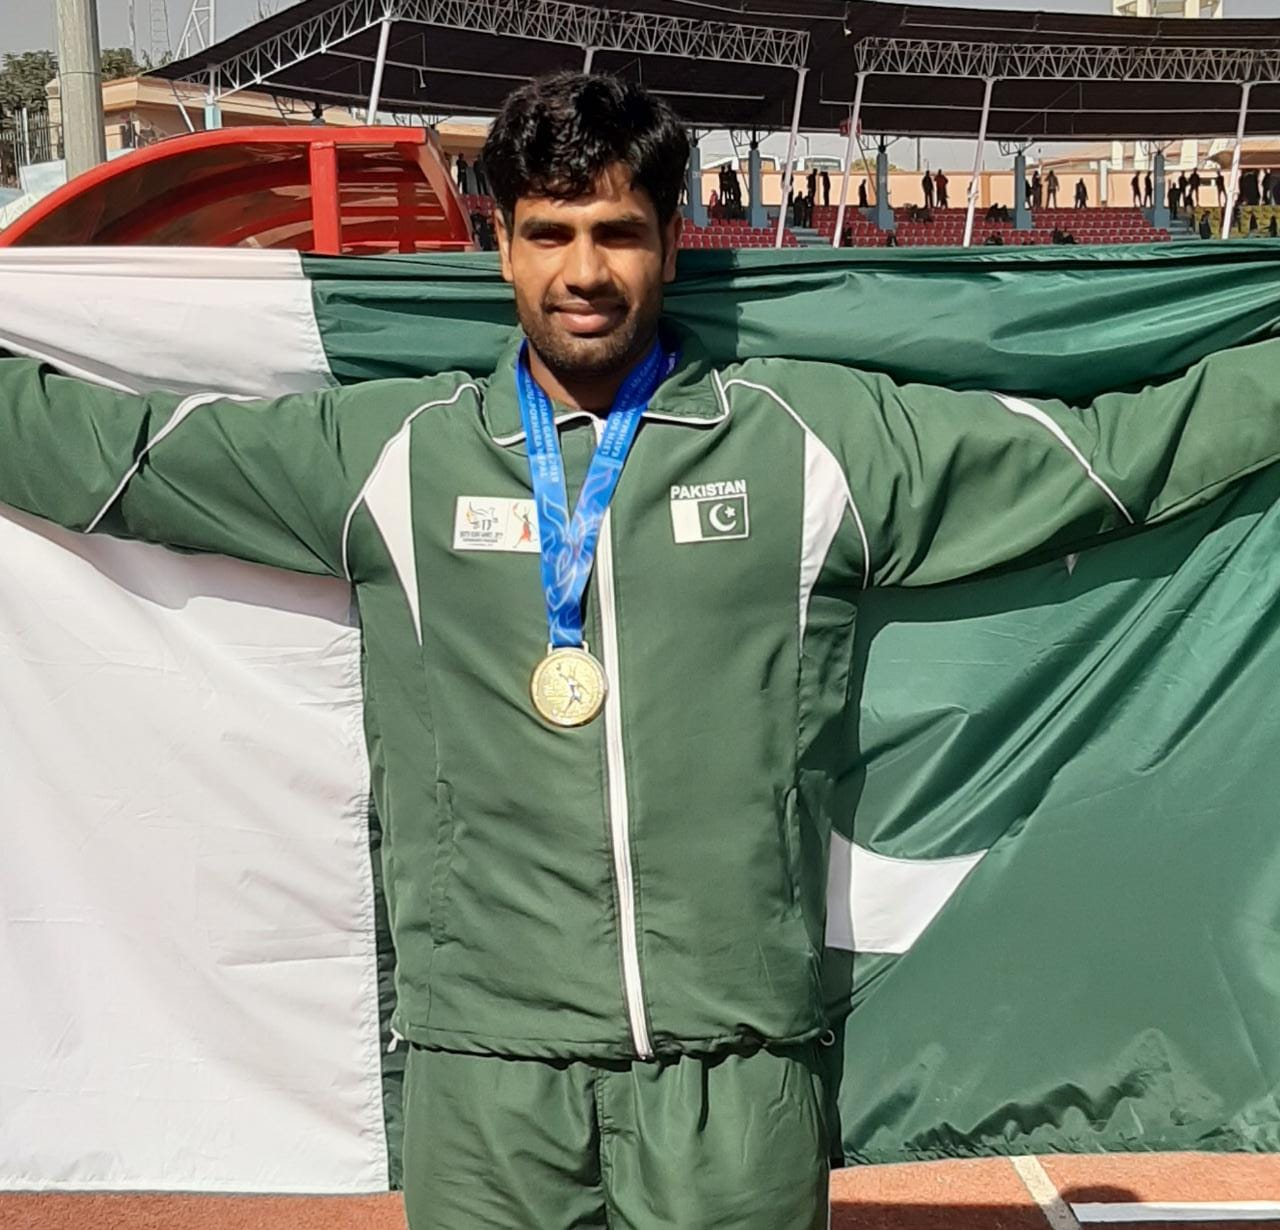 2019 sag pakistan s javelin thrower arshad nadeem wins gold qualifies for 2020 olympics